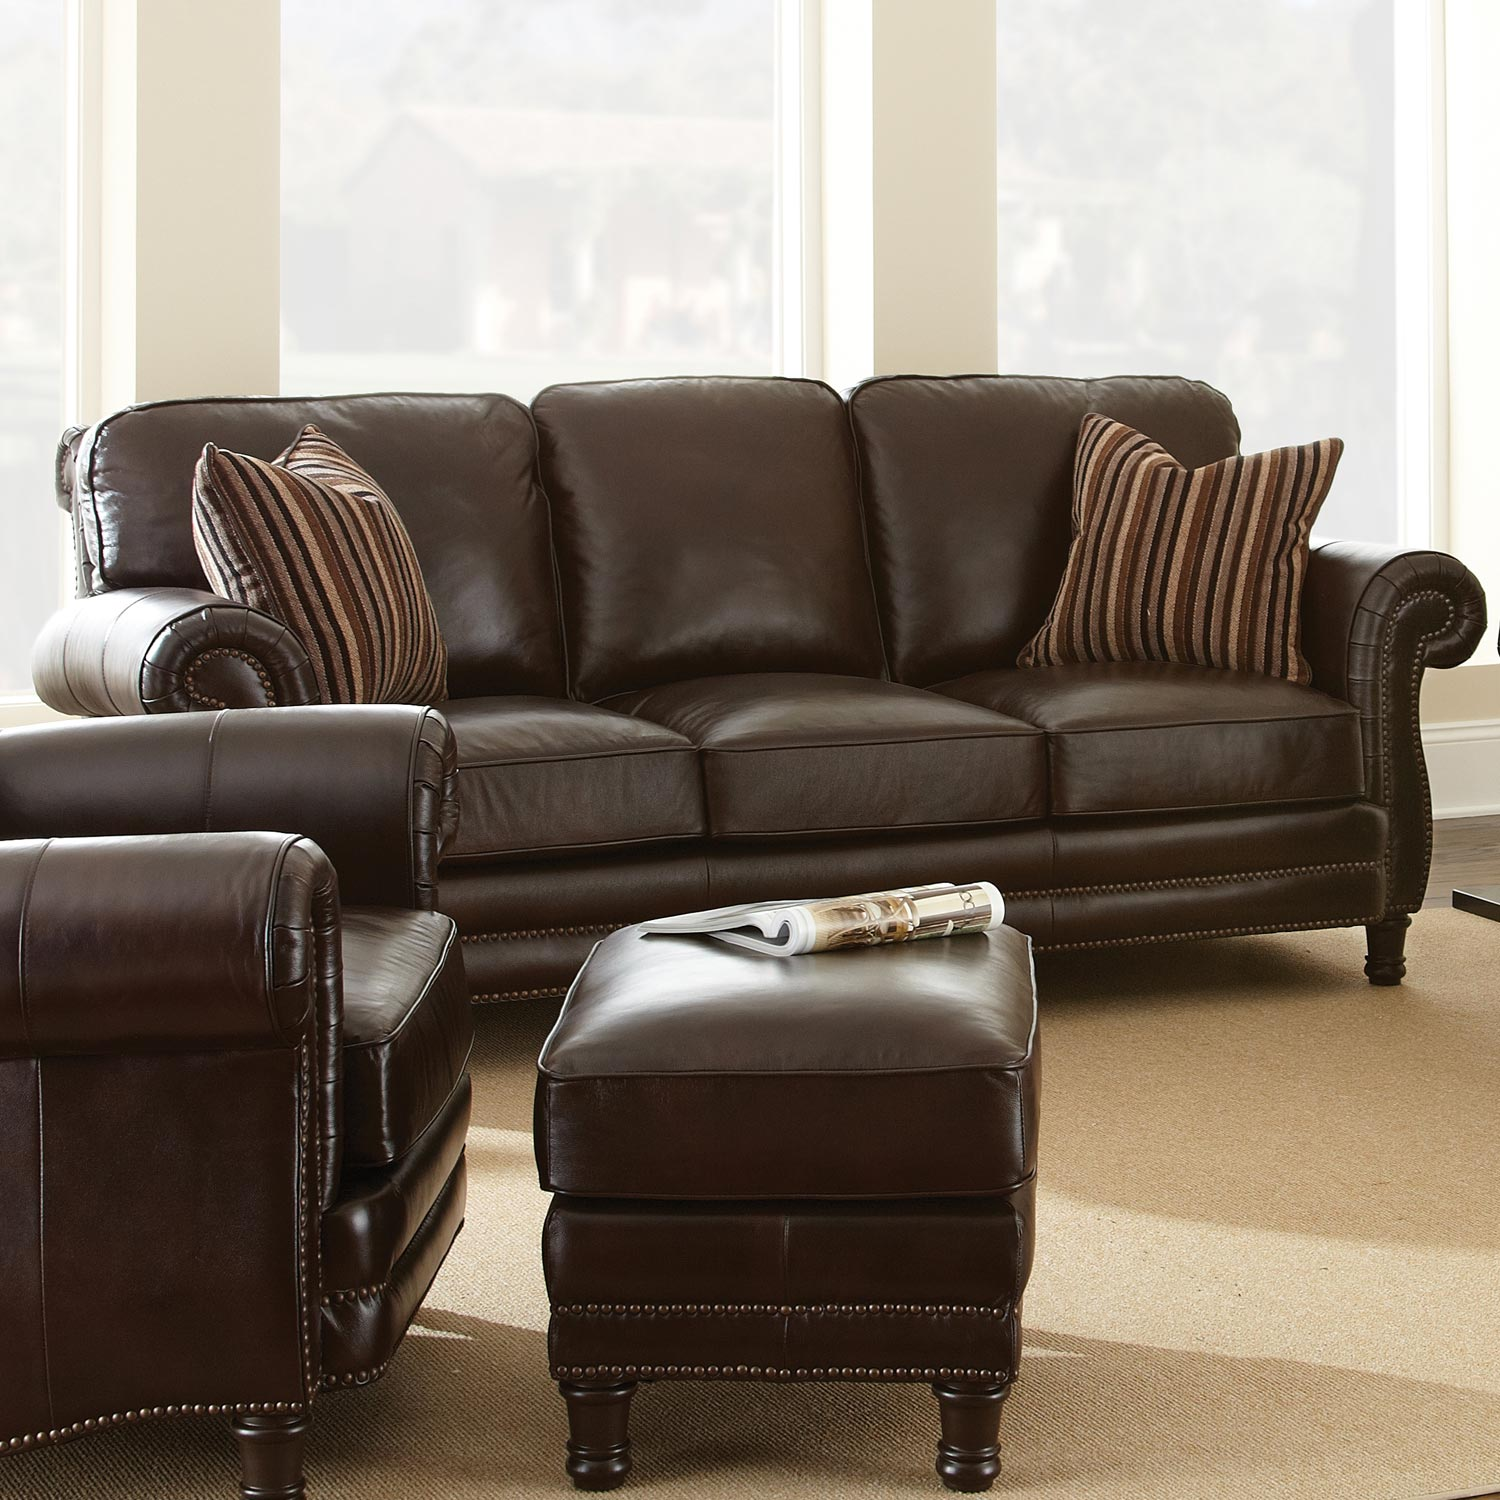 chateau 3 piece leather sofa set antique chocolate brown dcg stores. Black Bedroom Furniture Sets. Home Design Ideas